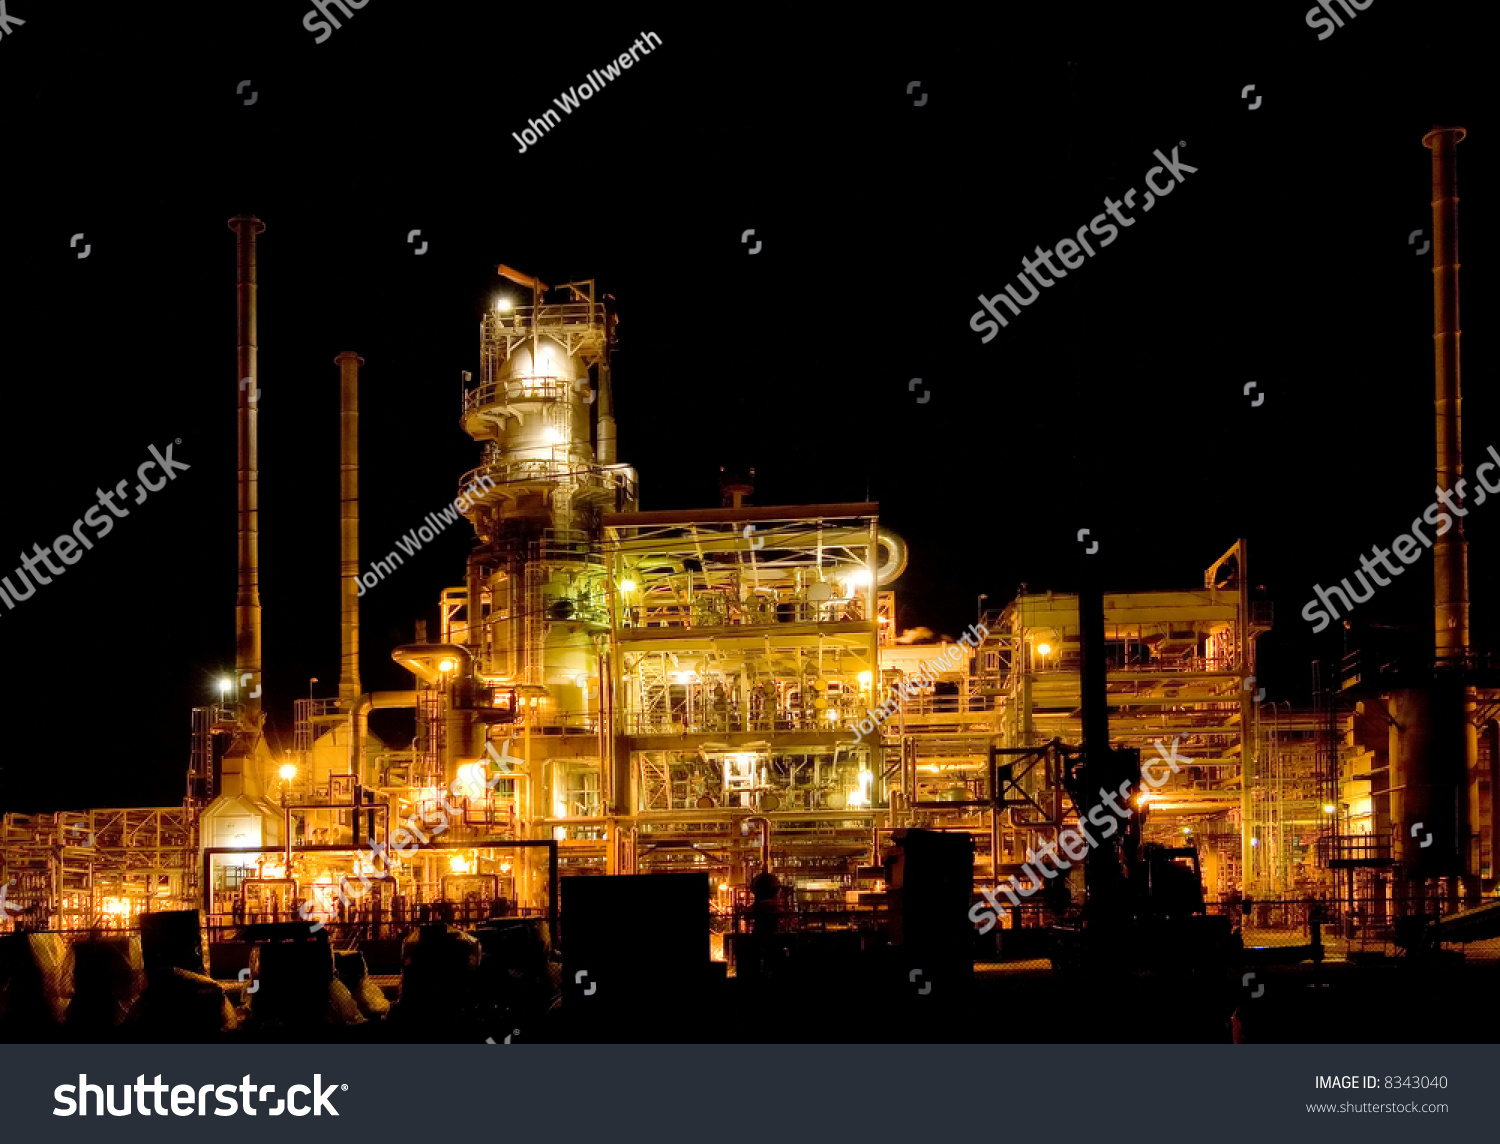 stock-photo-oil-refinery-lighting-up-the